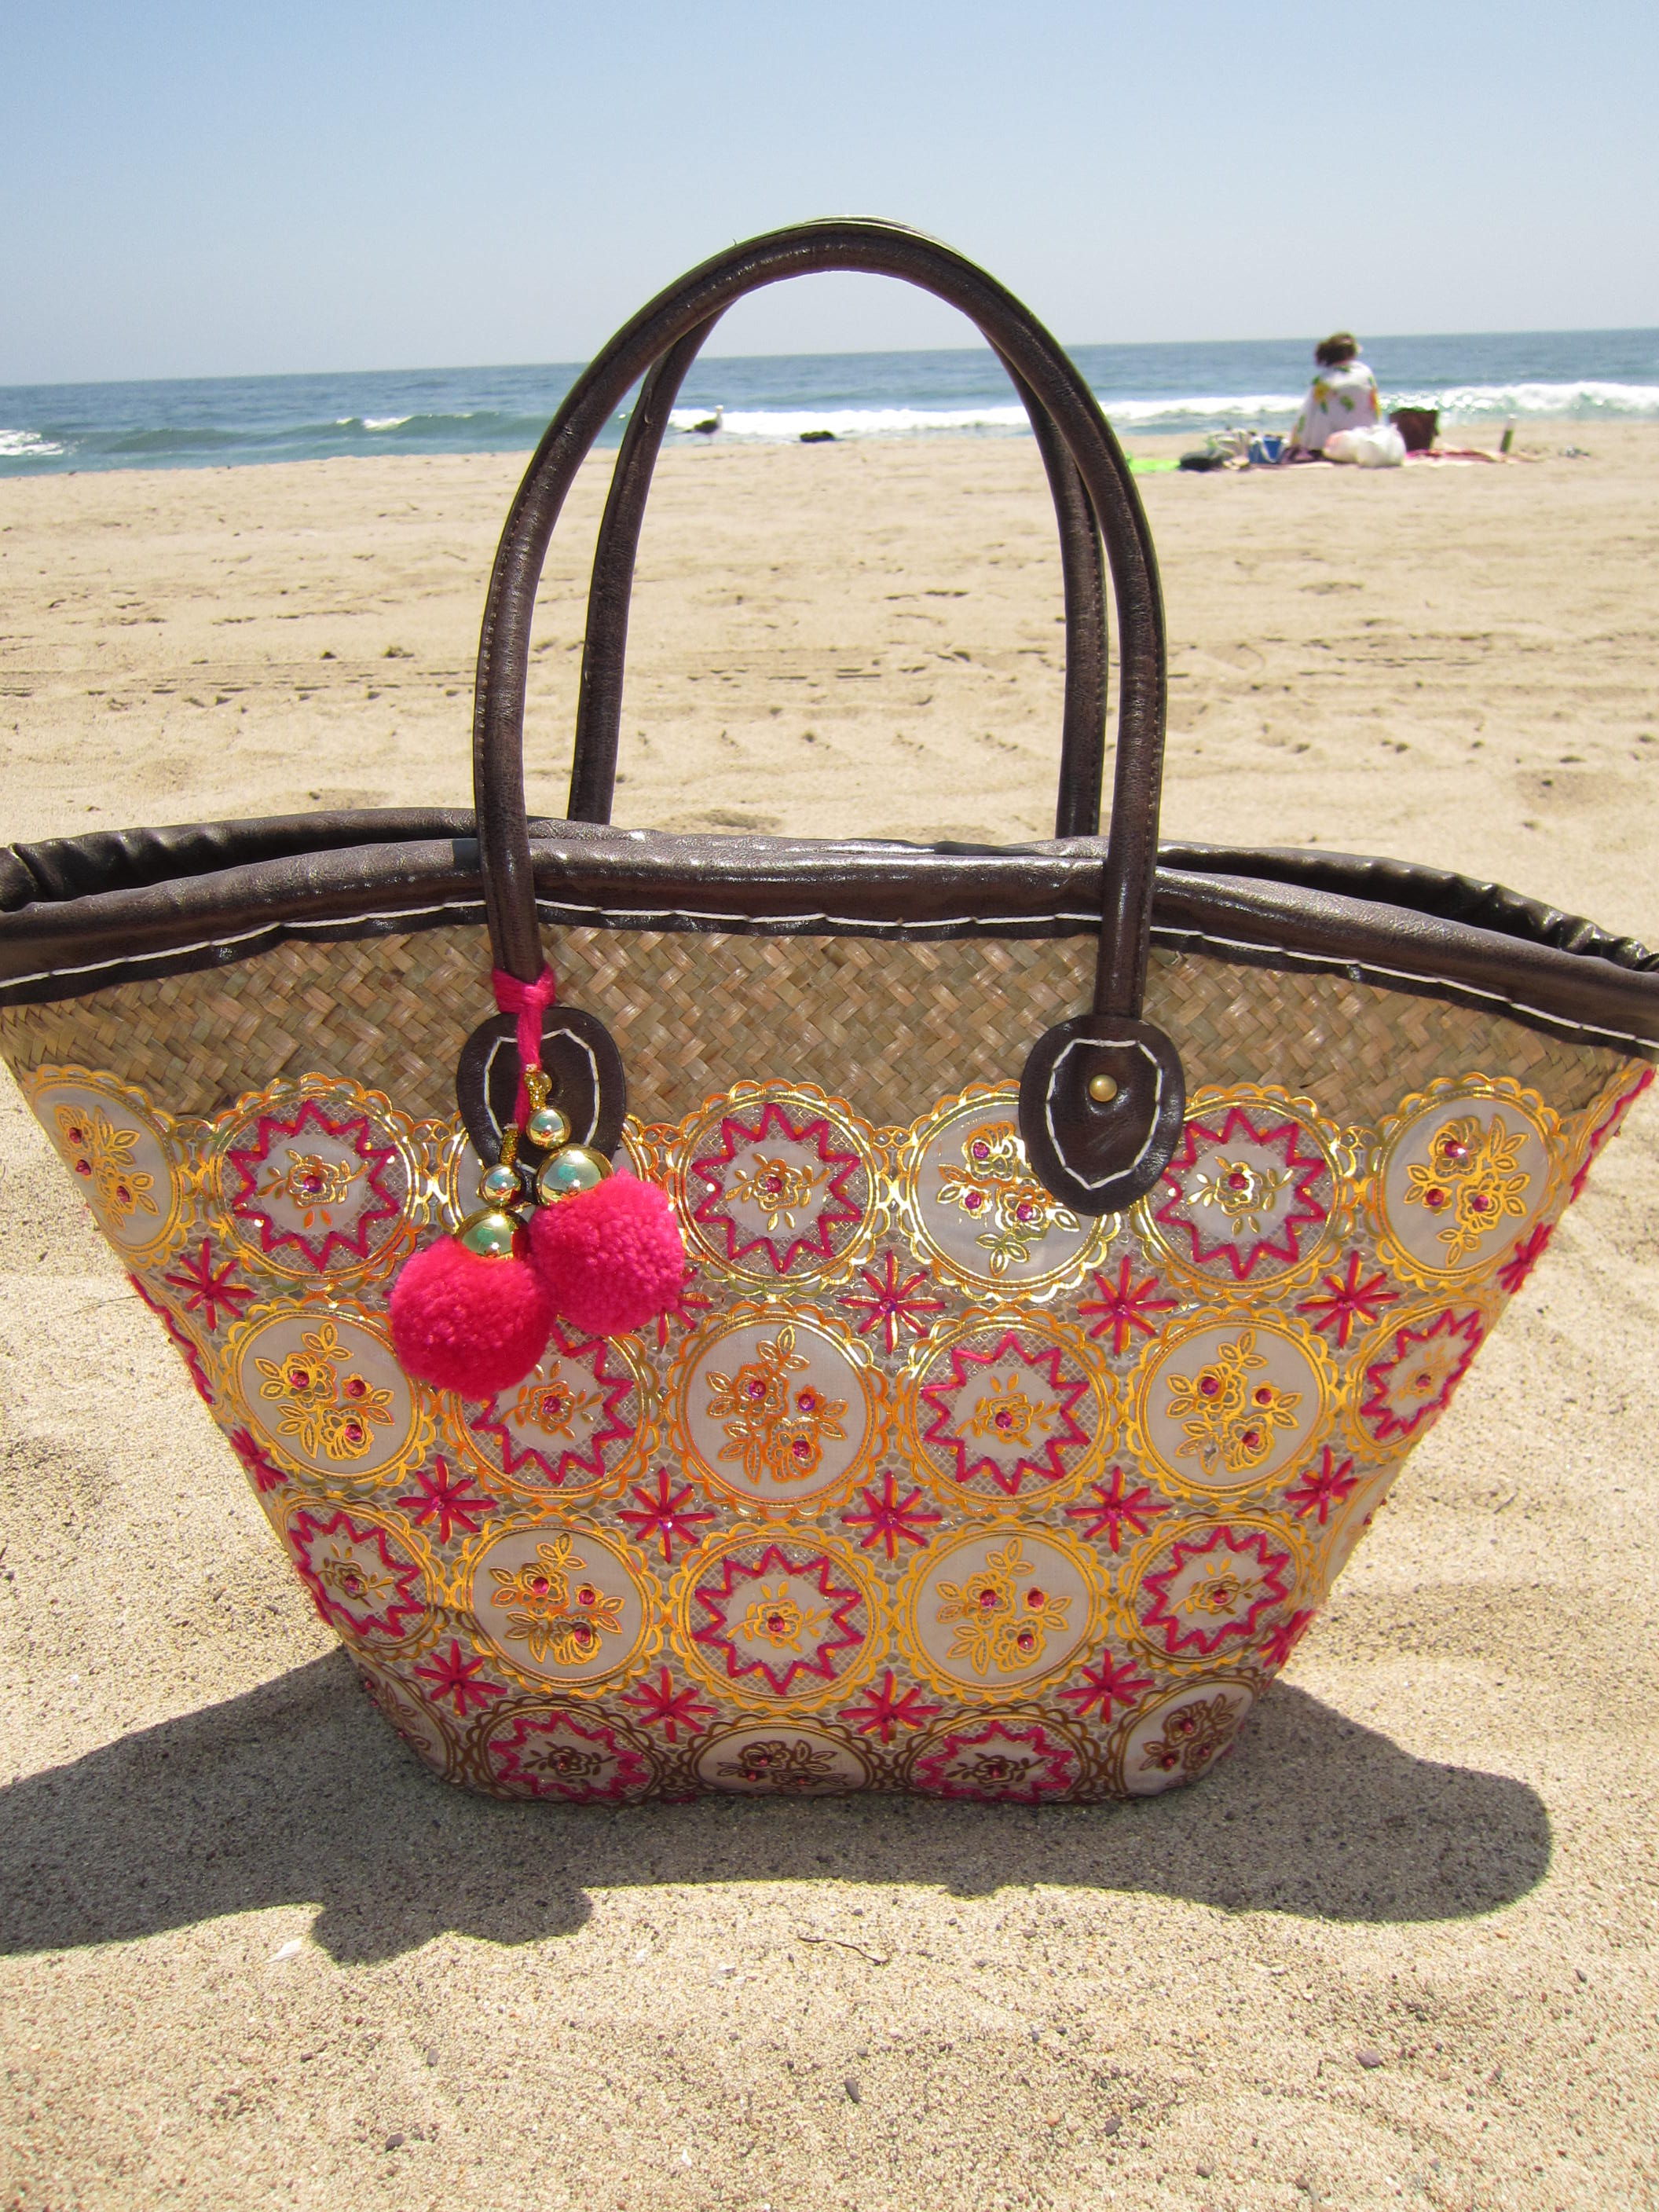 beach bag | IAMSHEGLOBAL